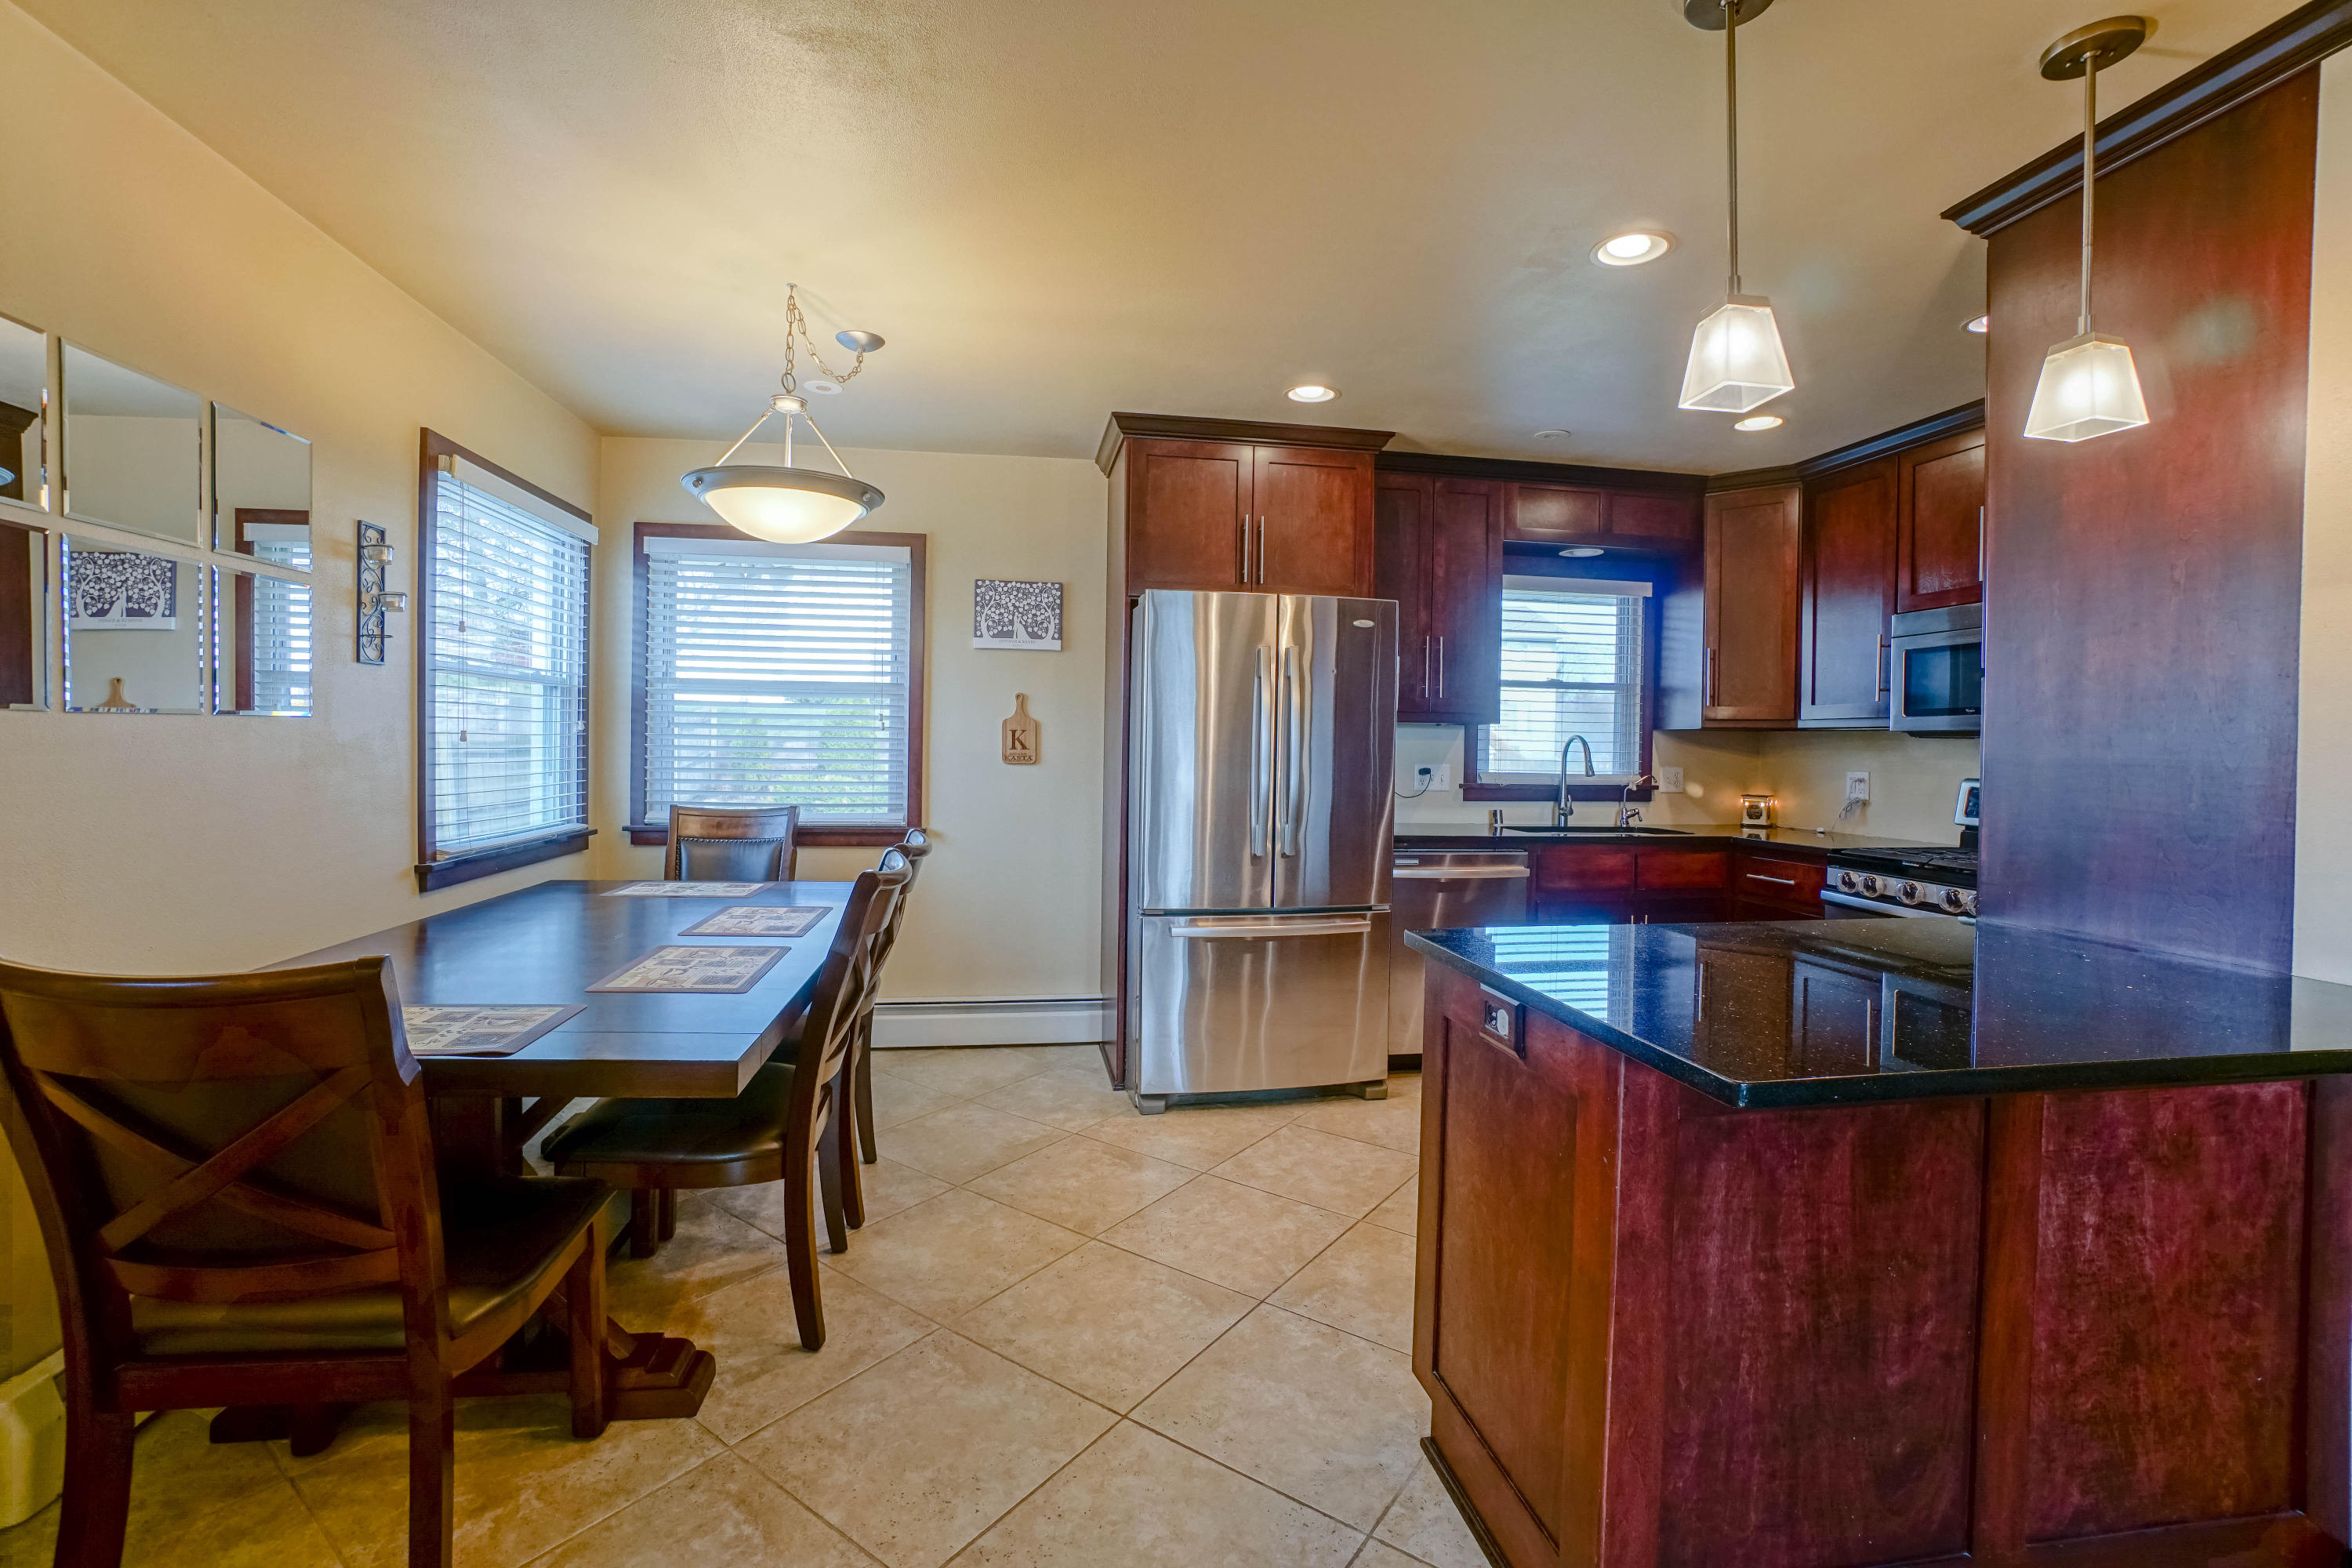 1915 Cardinal Dr, Waukesha, Wisconsin 53186, 4 Bedrooms Bedrooms, 7 Rooms Rooms,1 BathroomBathrooms,Single-Family,For Sale,Cardinal Dr,1683729